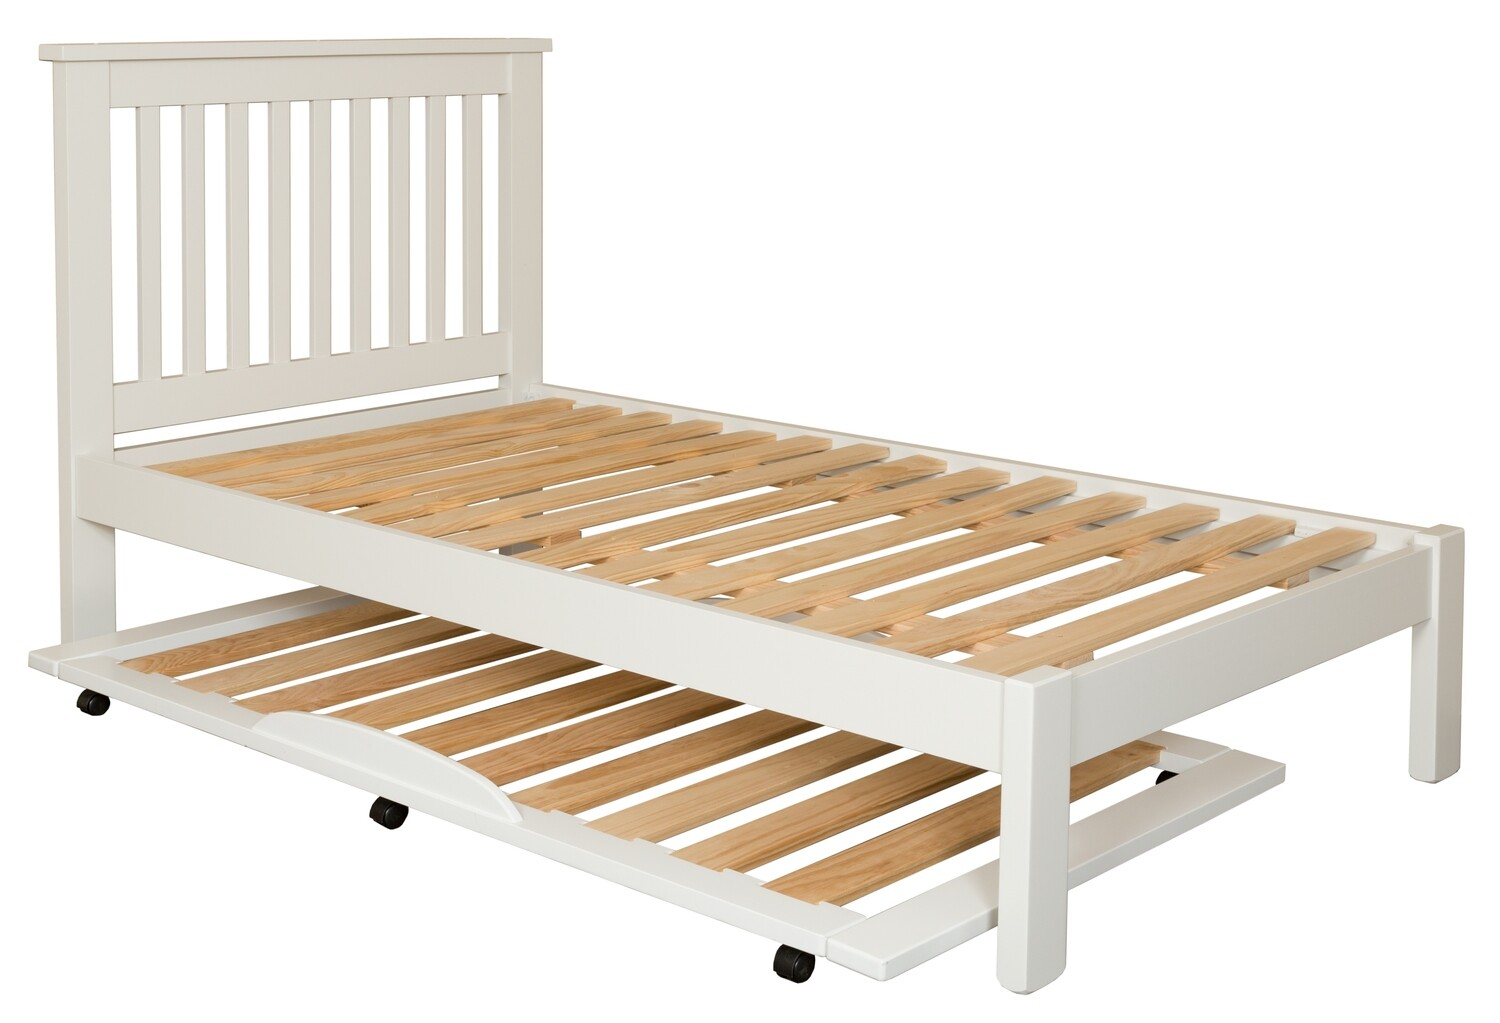 Trundler Bed King Single